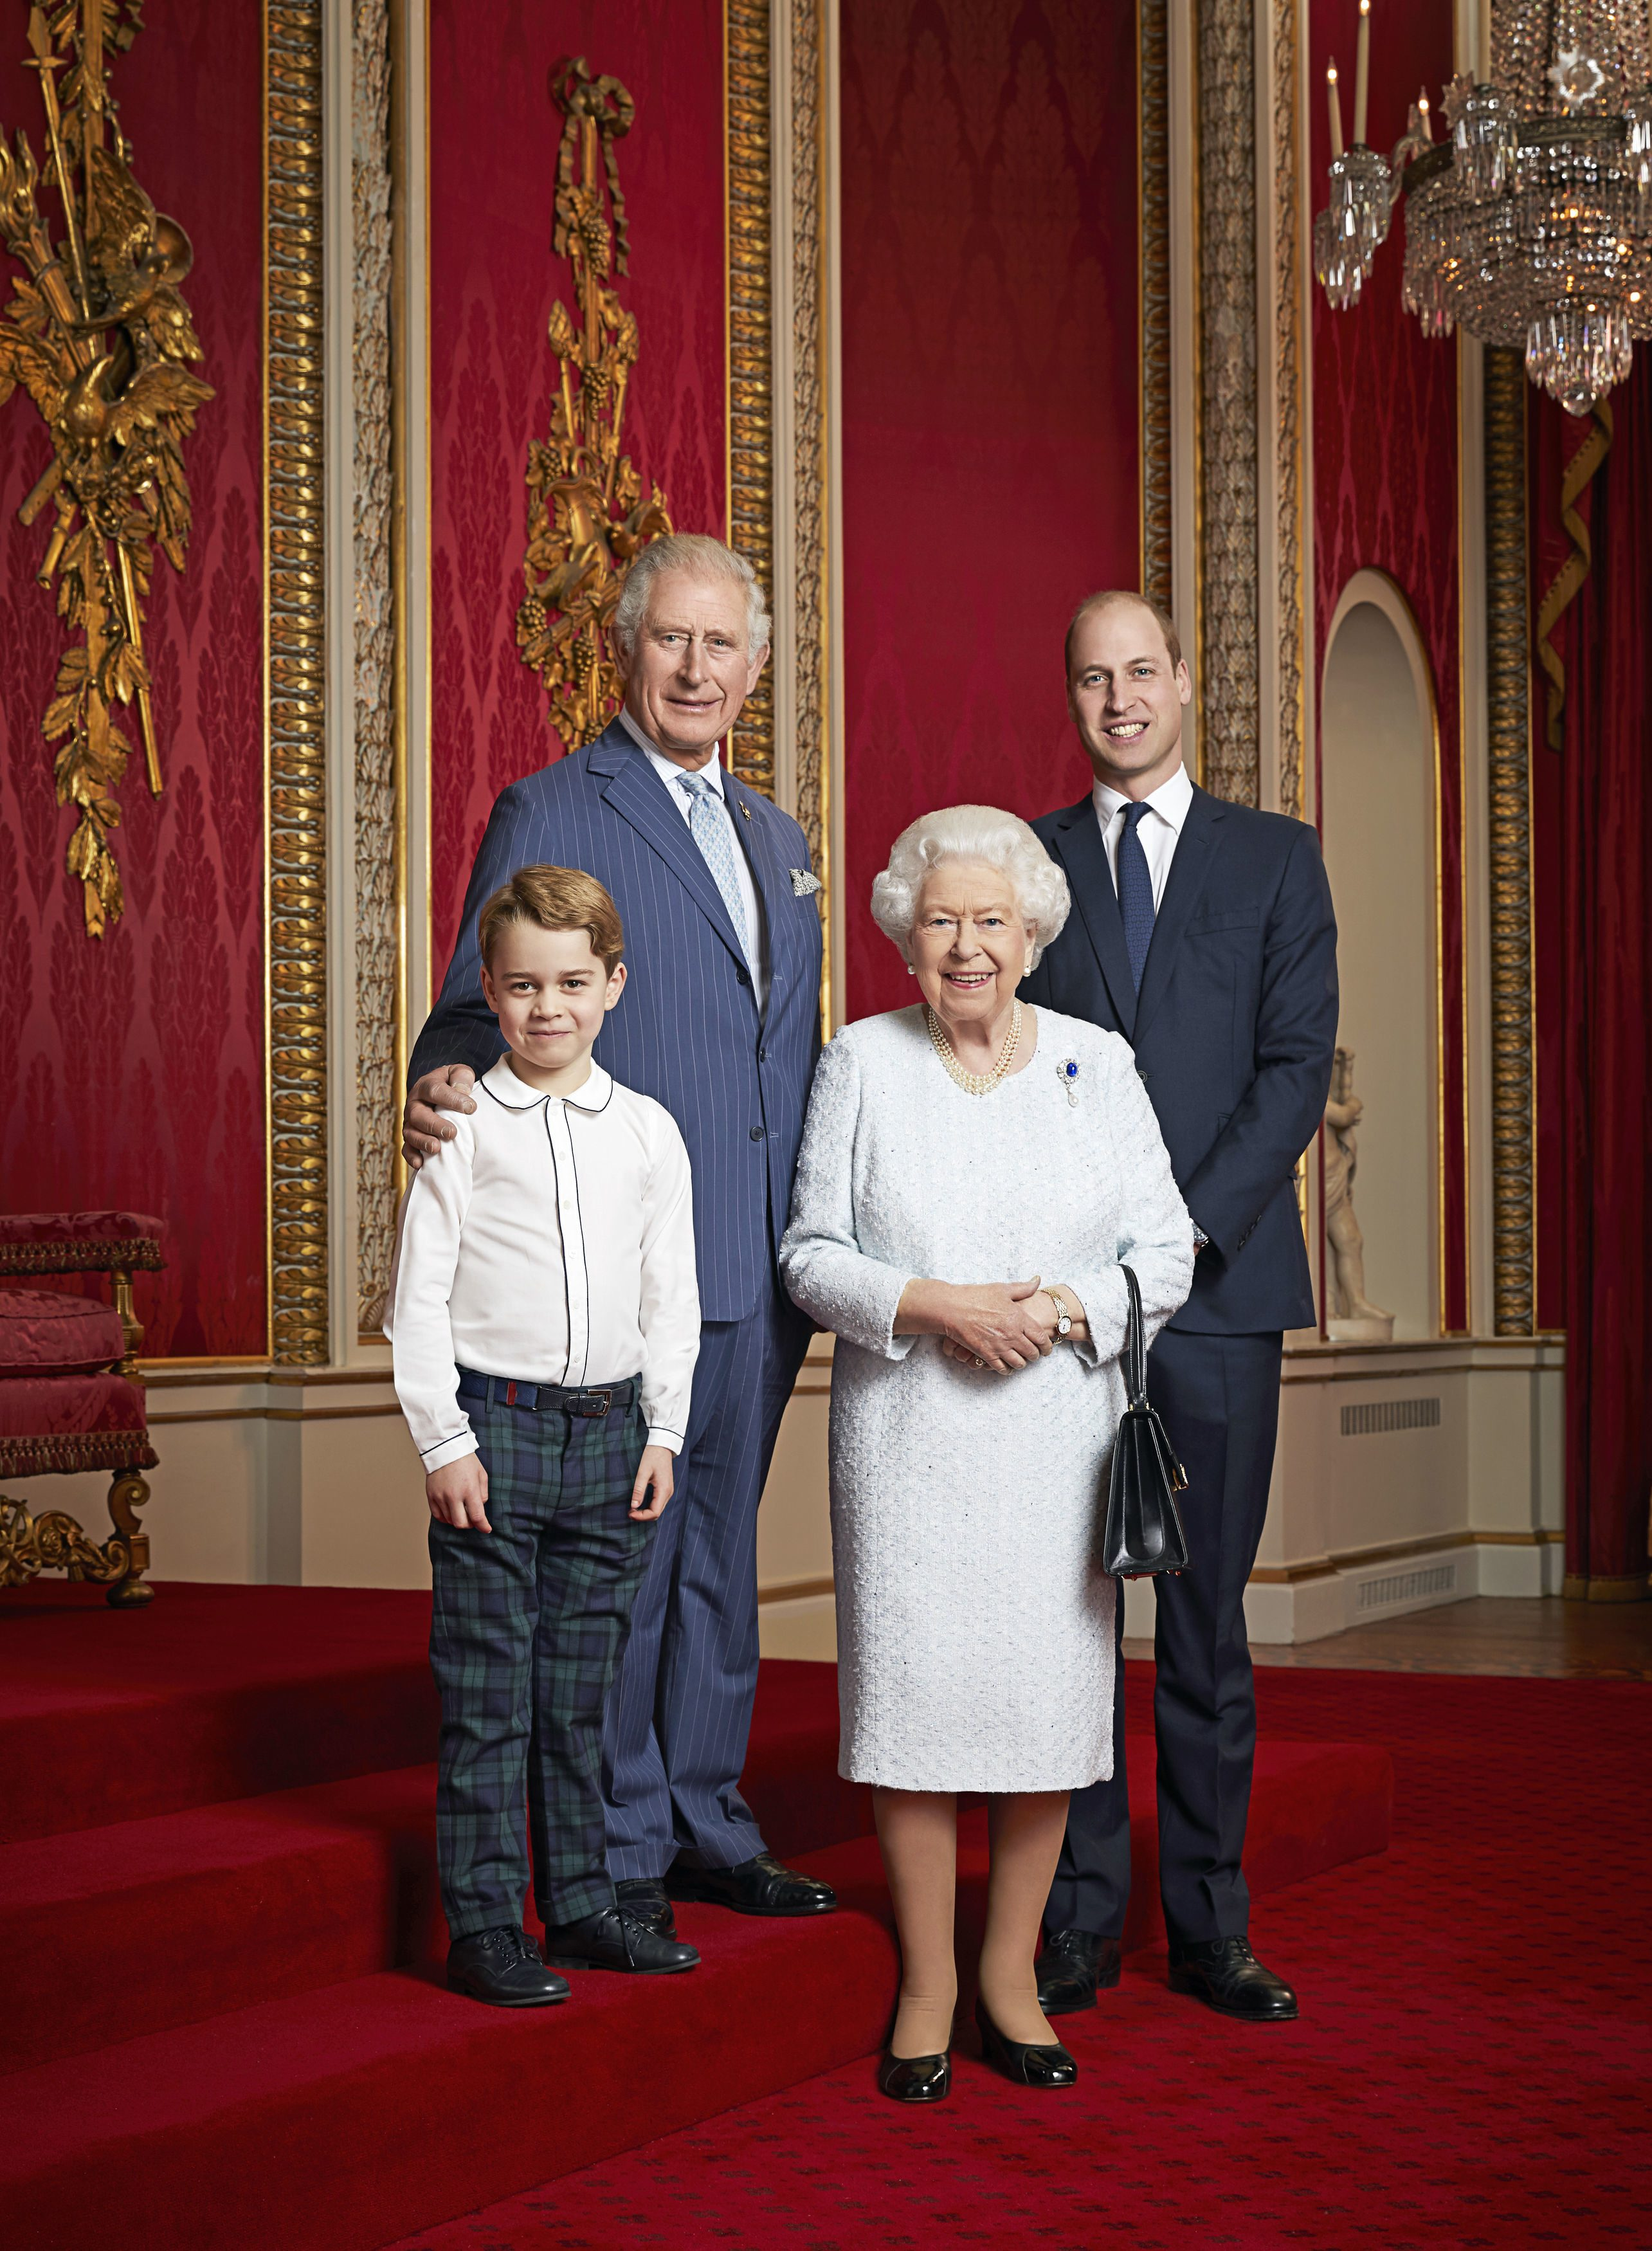 Prince George, Prince Charles, Queen Elizabeth II and Prince William Royal Family Portrait